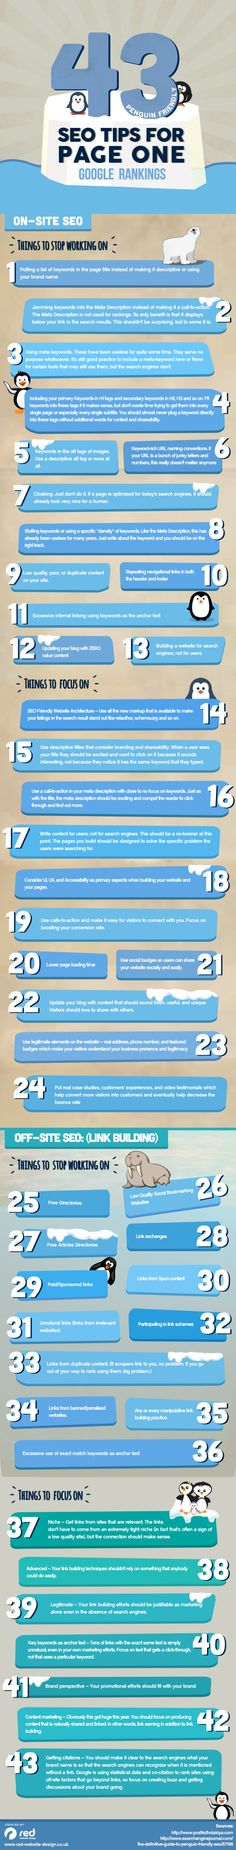 43 SEO tips for page one Google Rankings #infografía  see more at : http://www.brightlivingstone.com/seo/